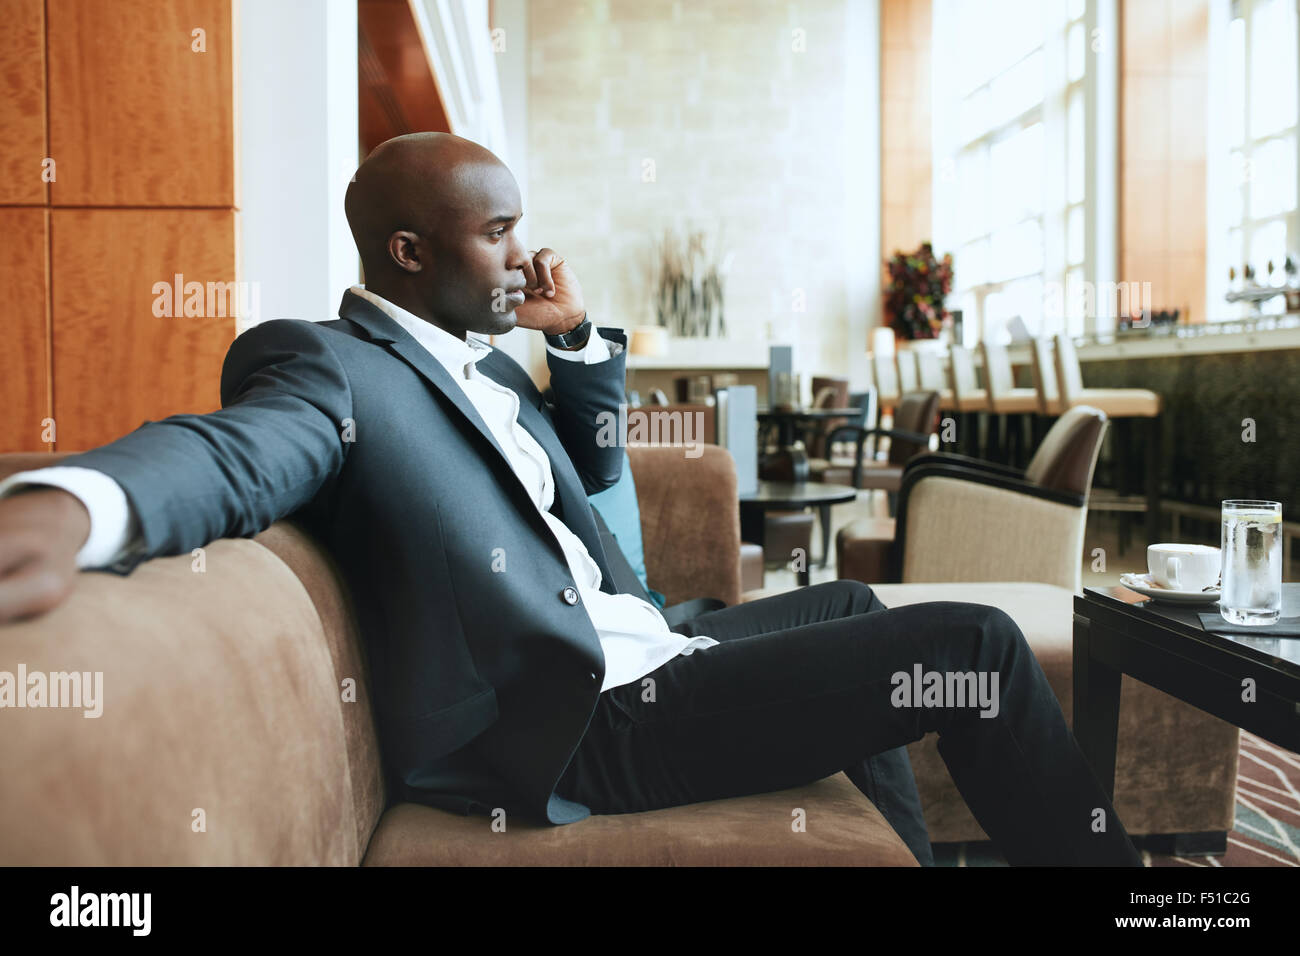 Young businessman sitting relaxed on sofa at hotel lobby making a phone call, waiting for someone. - Stock Image